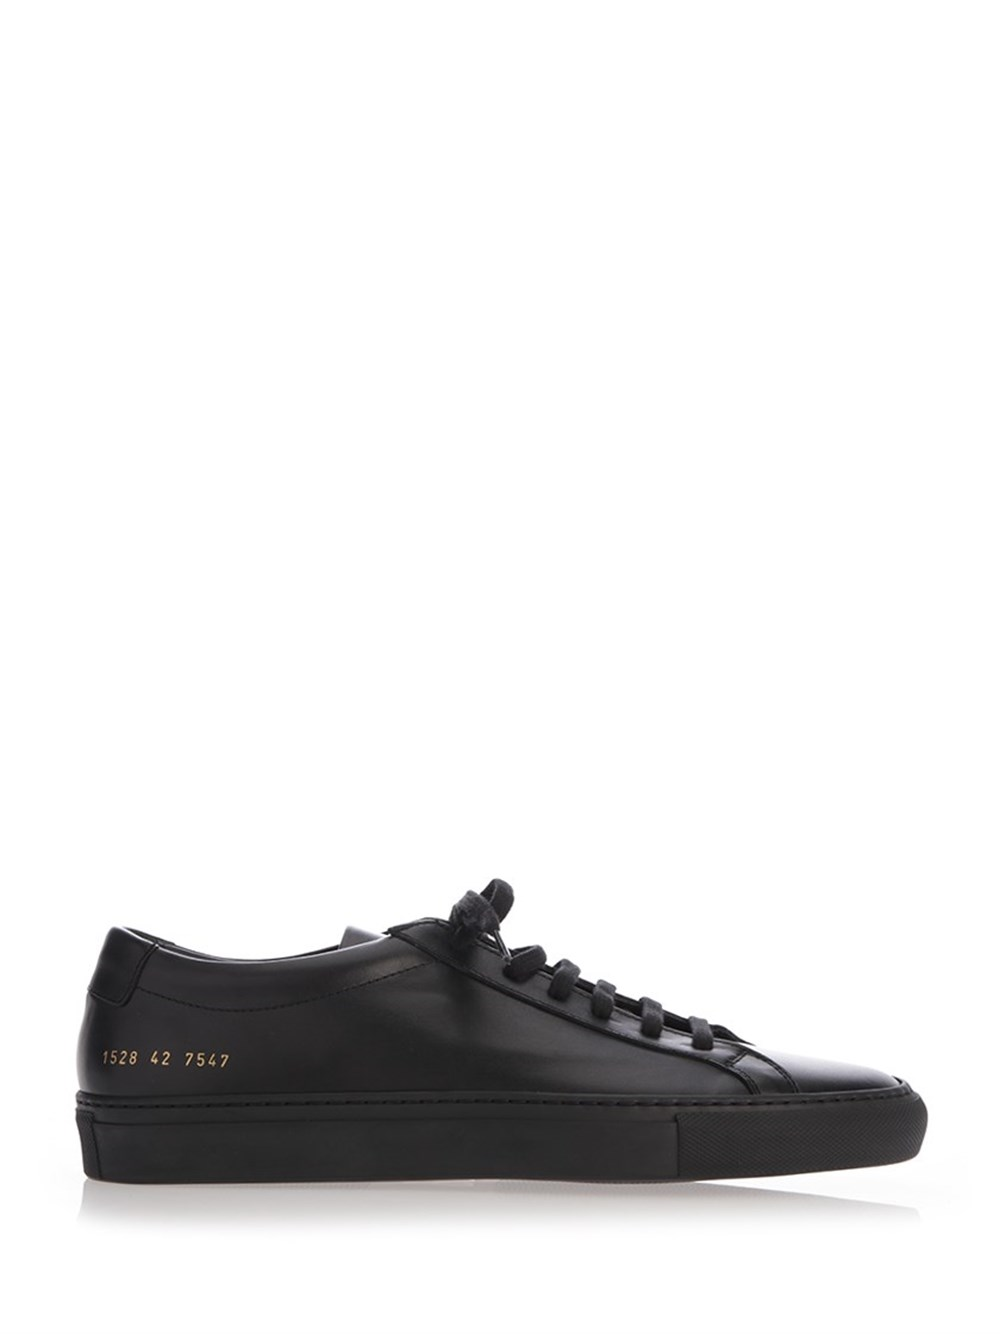 COMMON PROJECTS Black 'Original Achilles' Sneakers